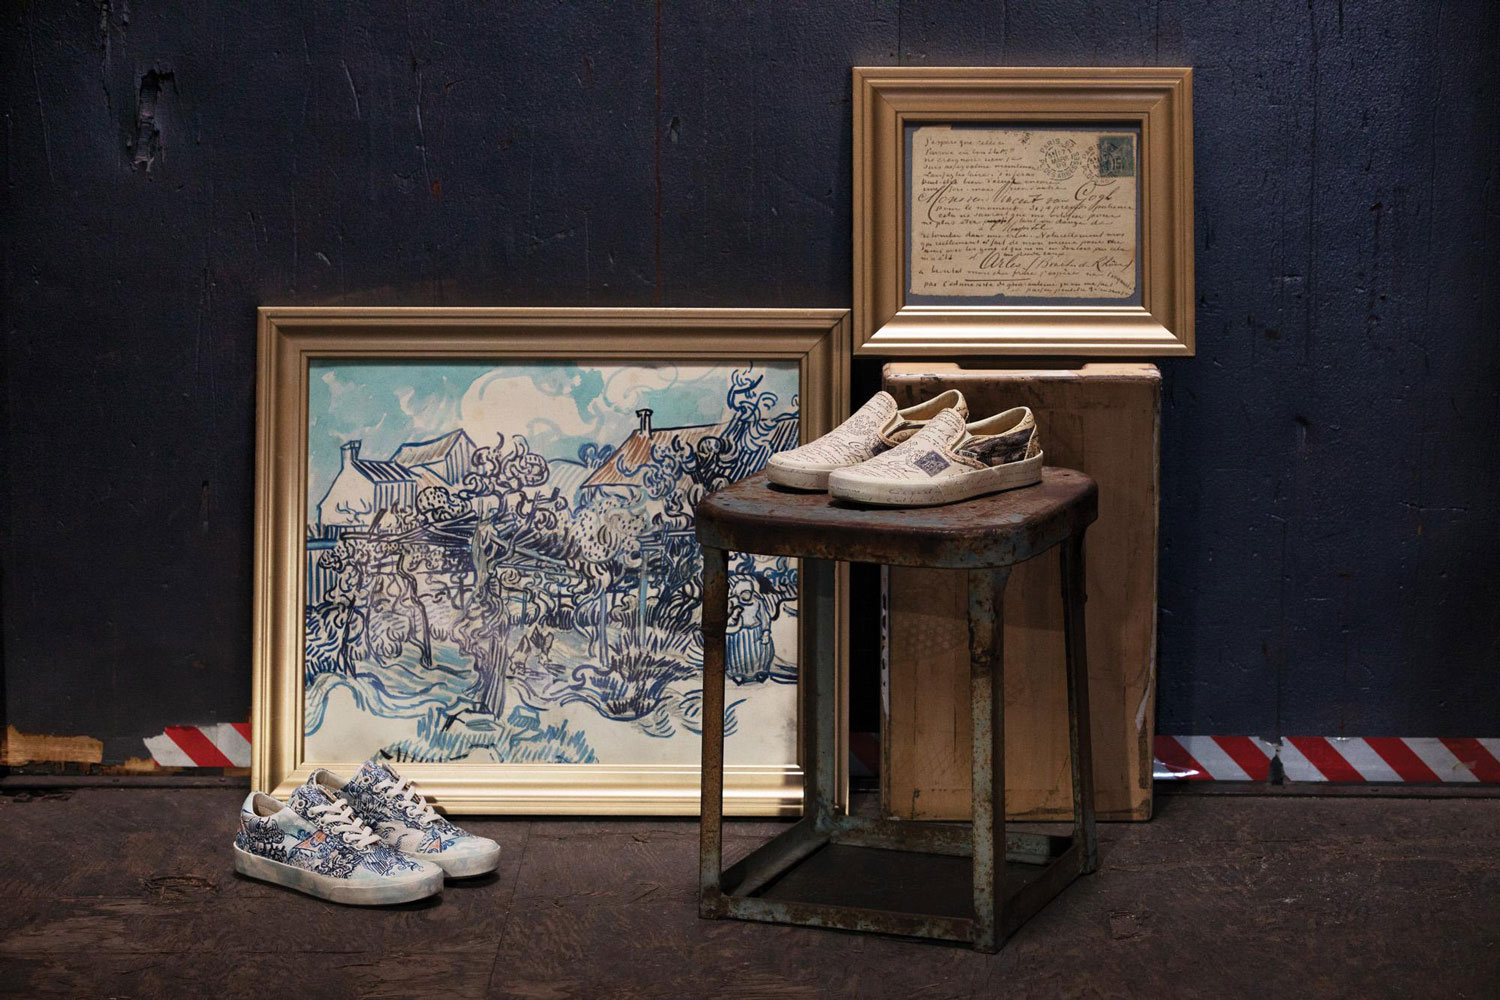 cd19f311756b55 The Vans x Van Gogh collection features sneakers printed with  Old Vineyard  with Peasant  Woman and Van Gogh s letters.